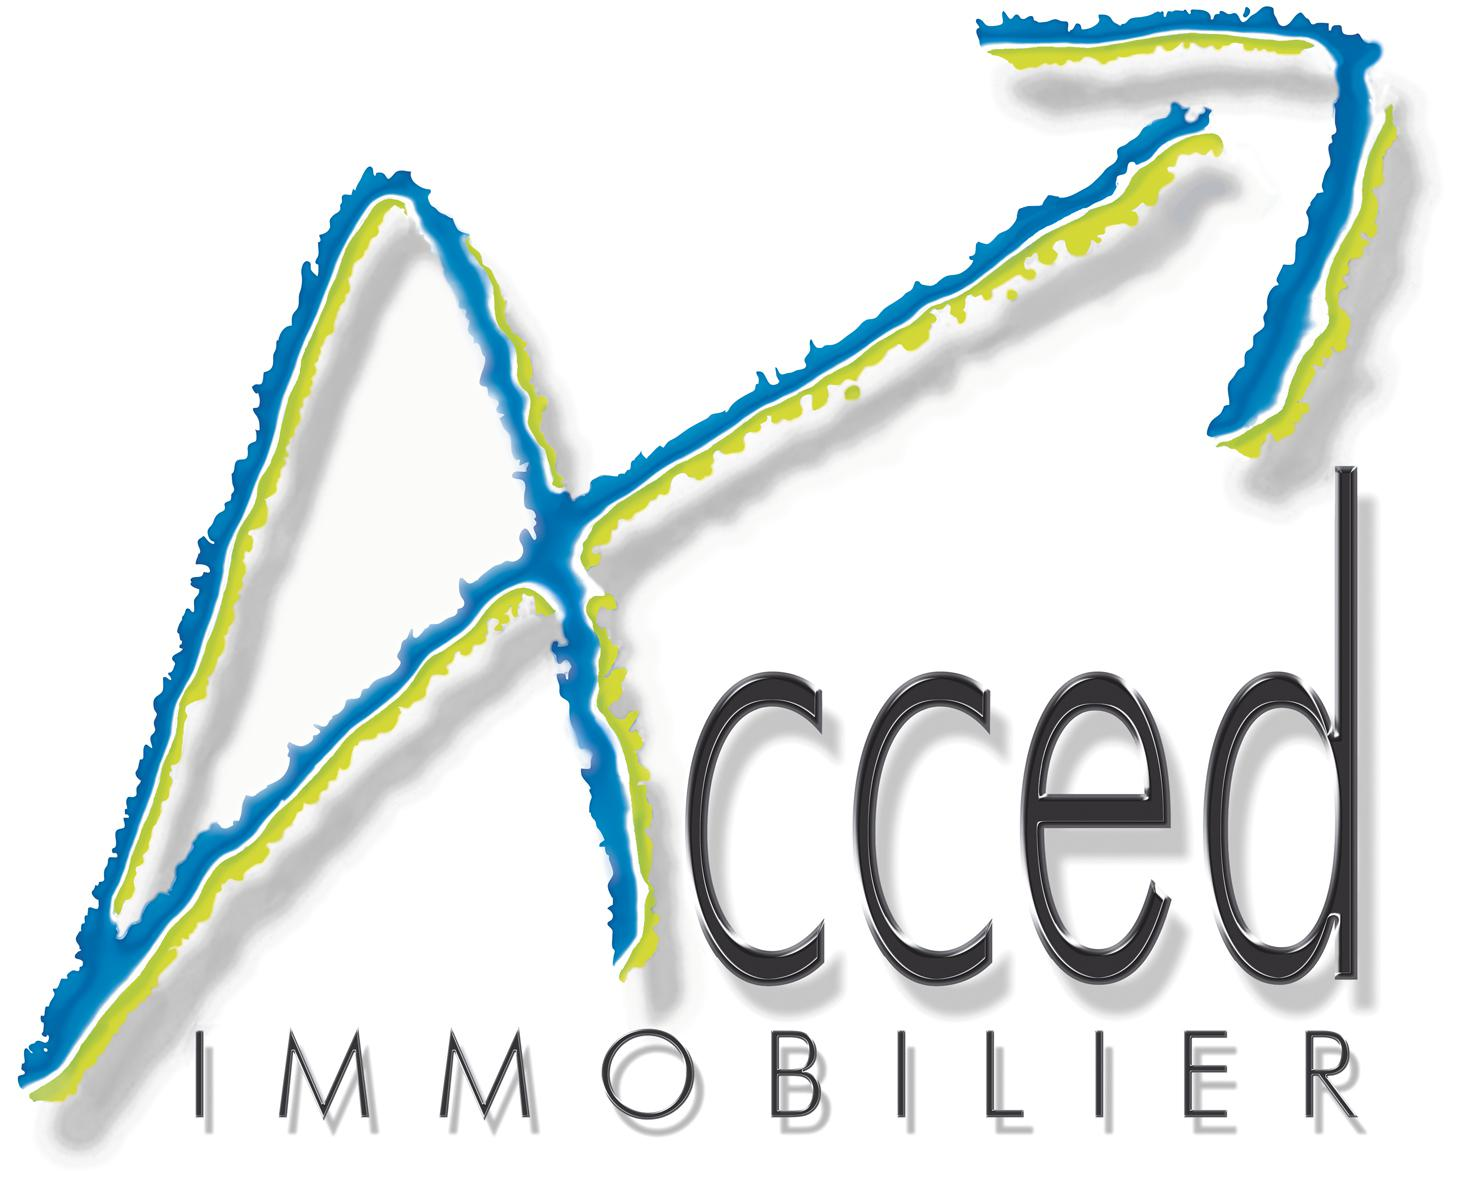 Image de l'agence Acced Immobilier - Savenay